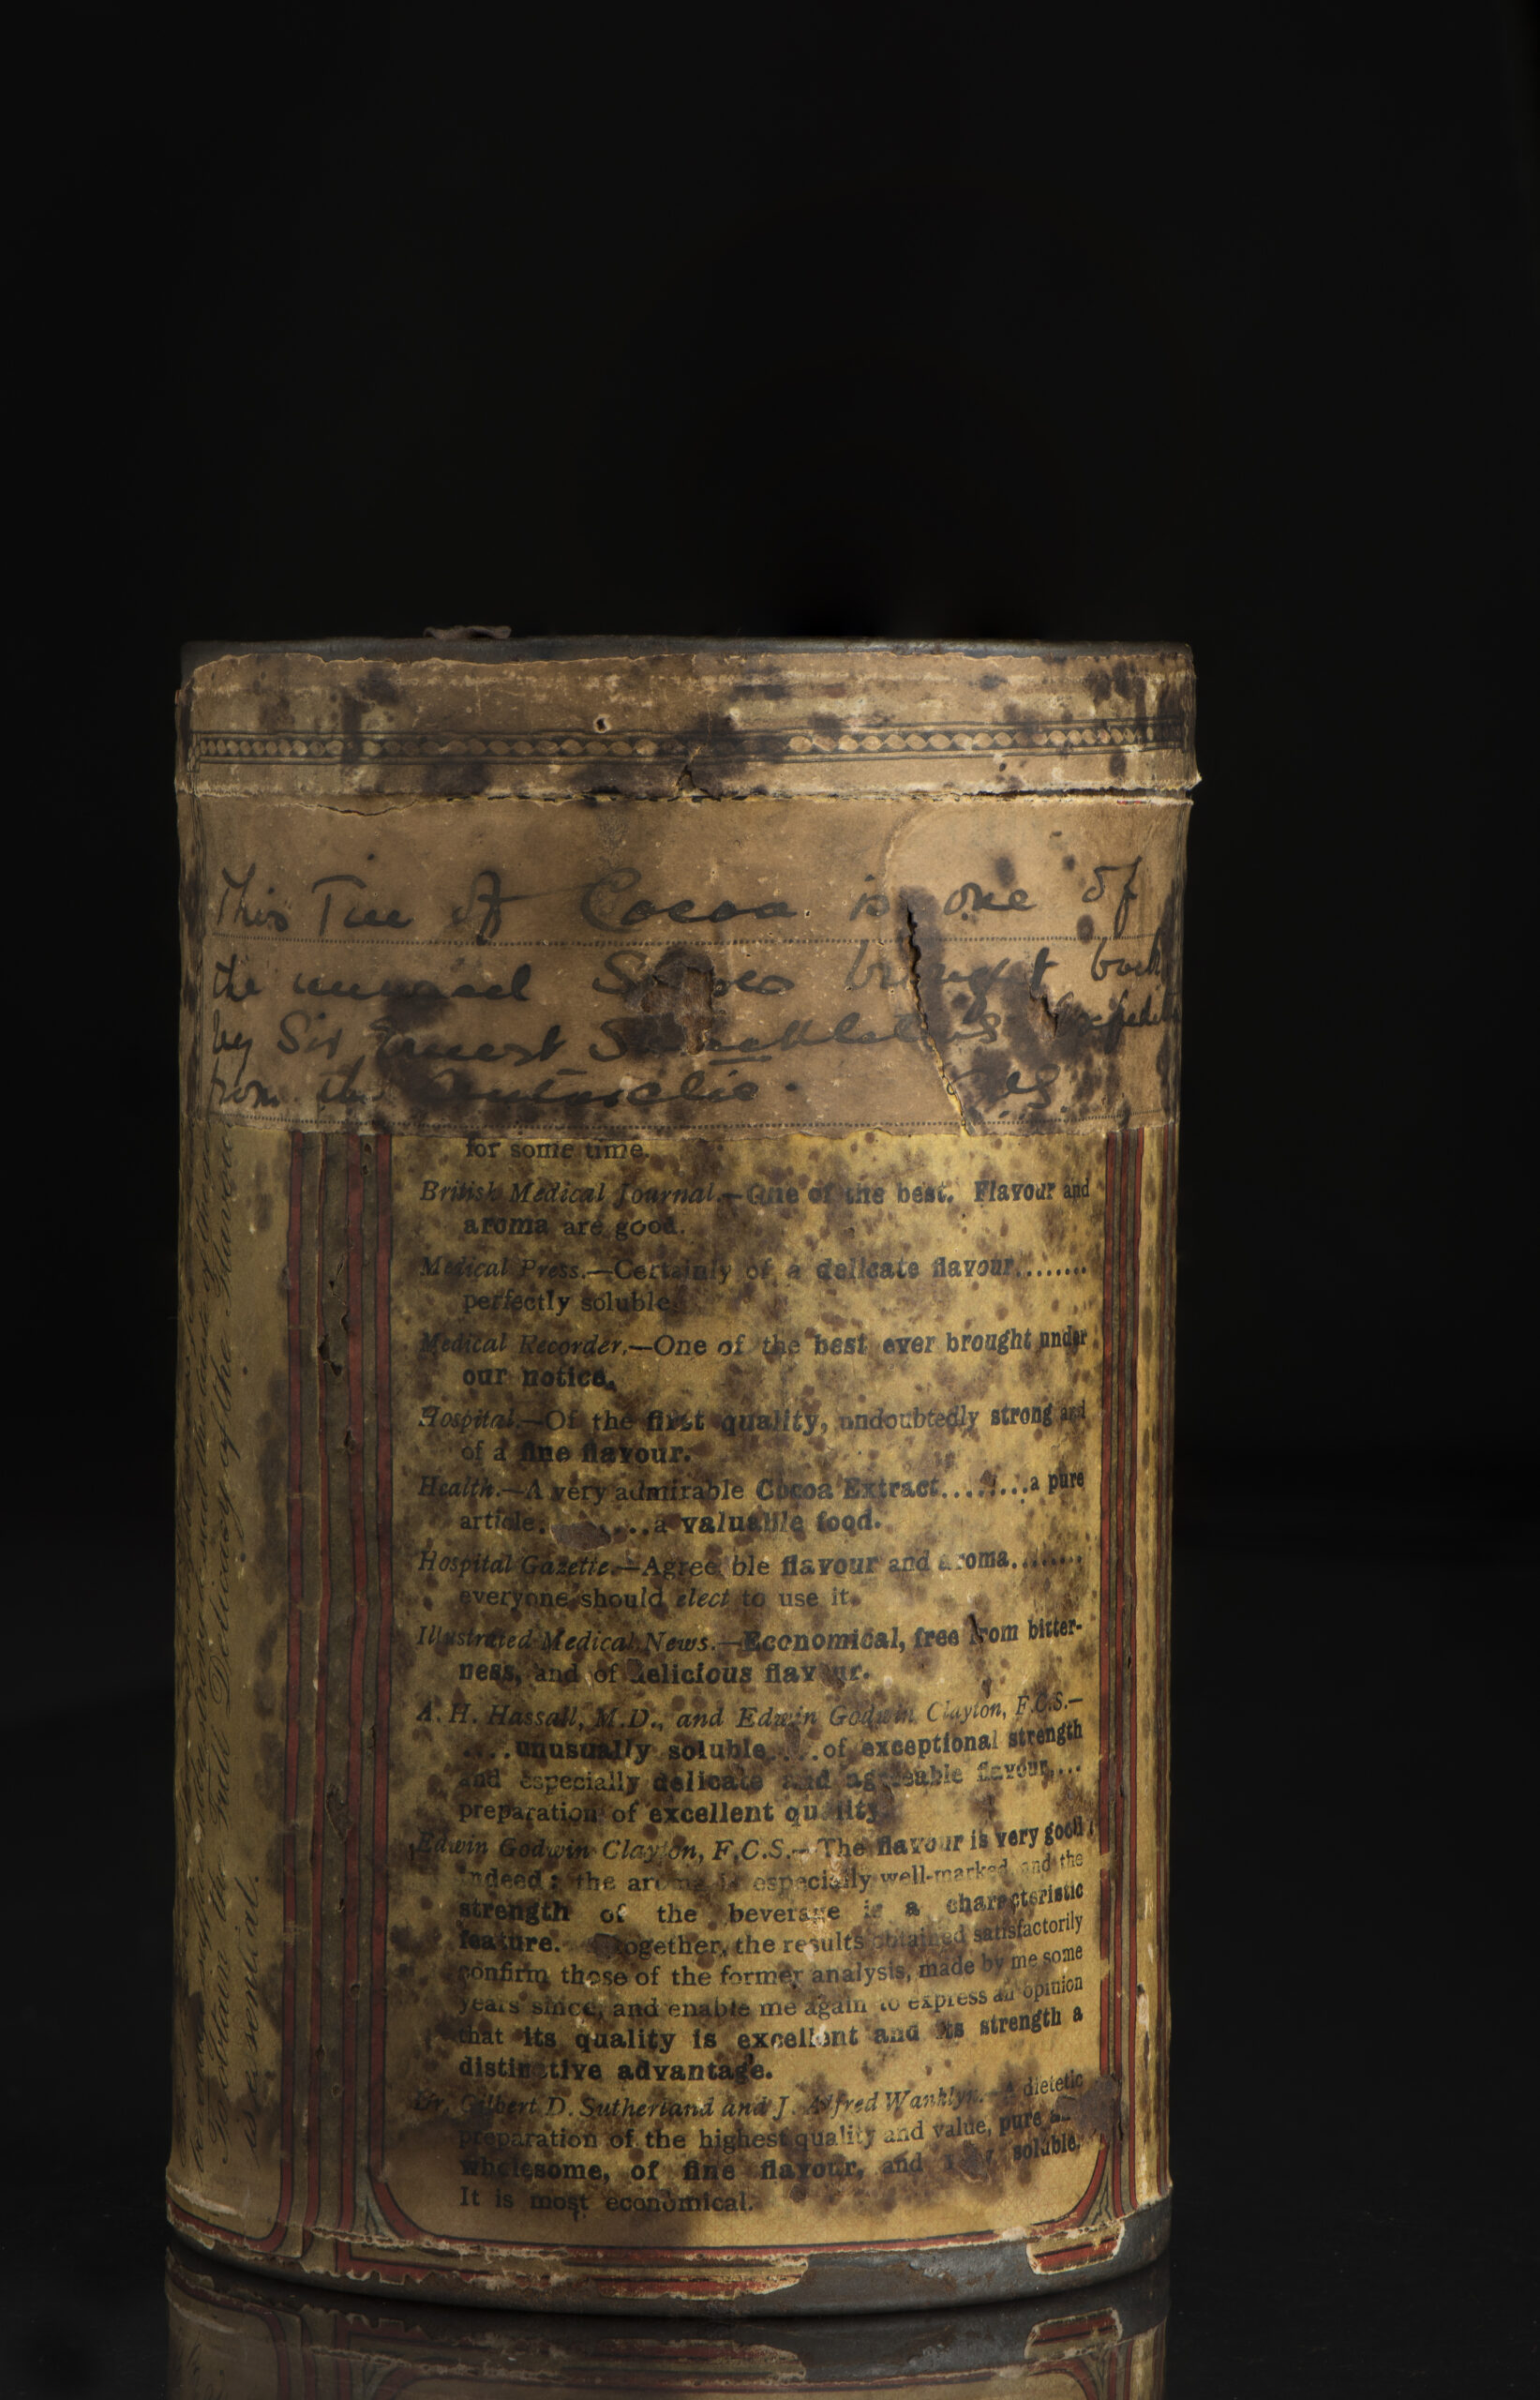 Reverse of Shackleton's Cocoa Tin showing handwritten note.